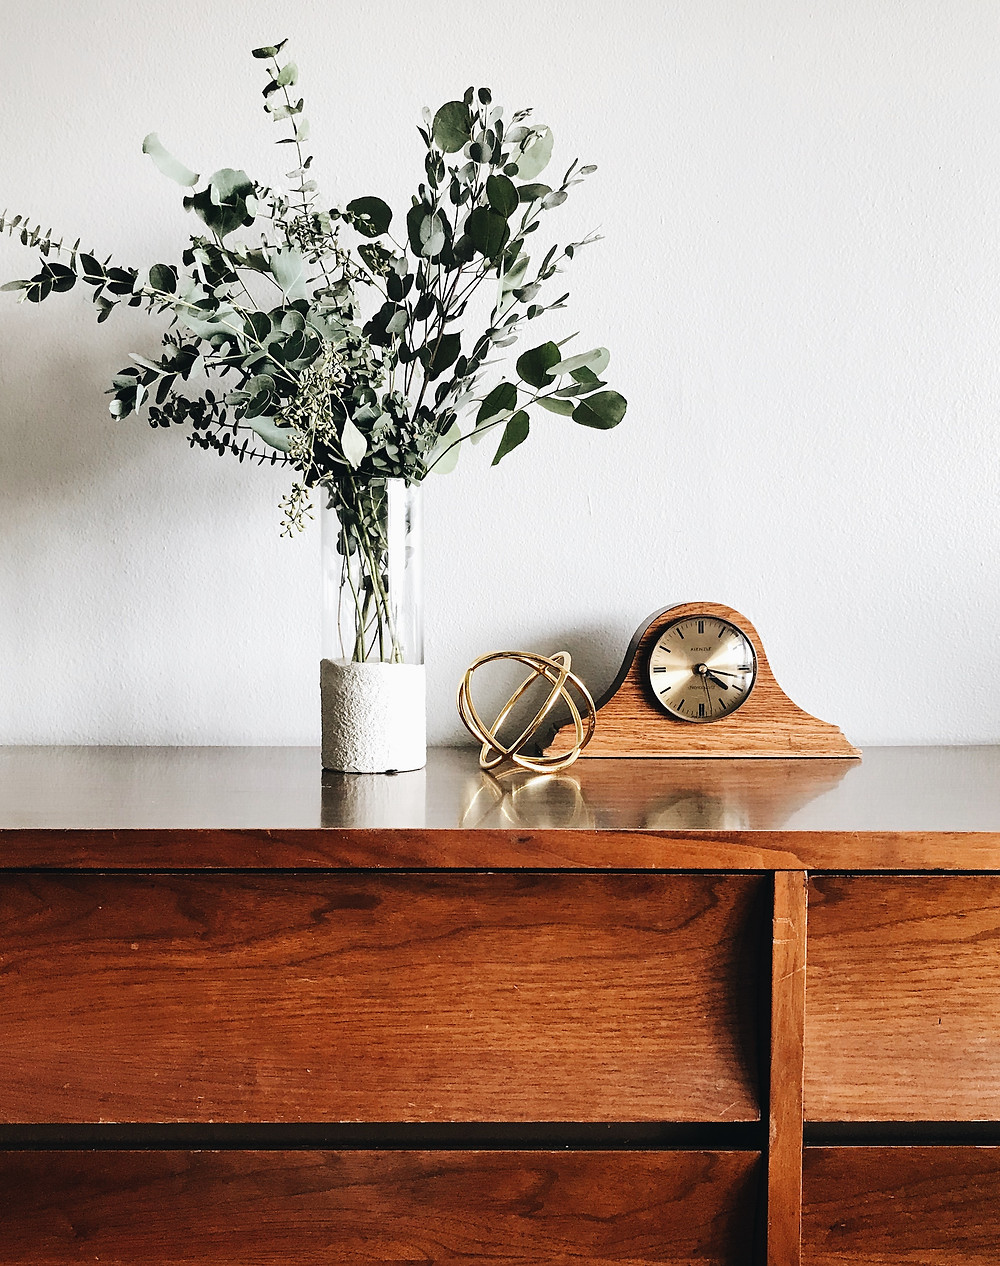 Vintage min-century furniture with modern vase and eucalyptus branches.